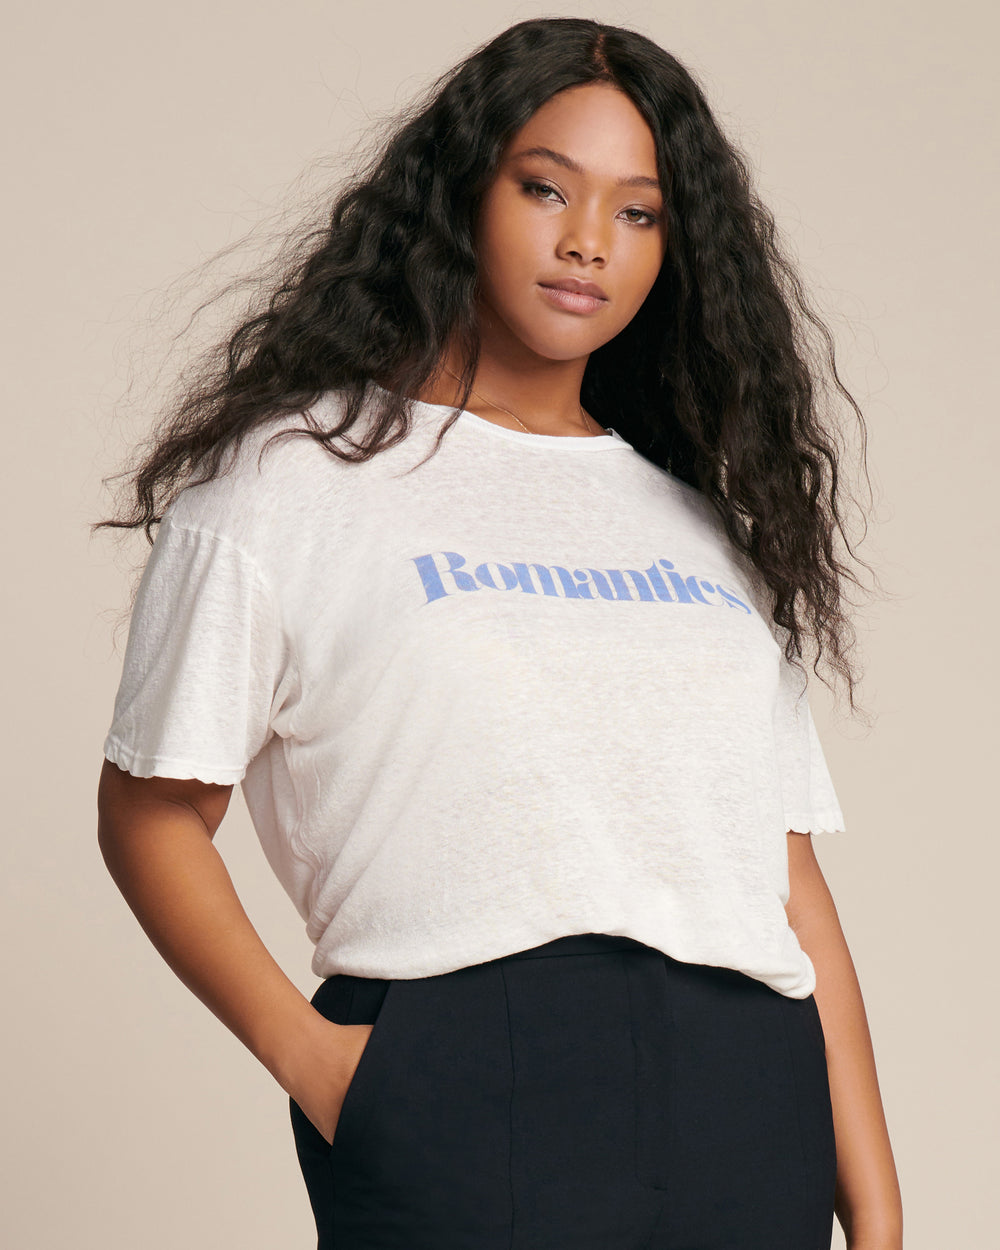 """Hopeless Romantics"" Baby Tee"